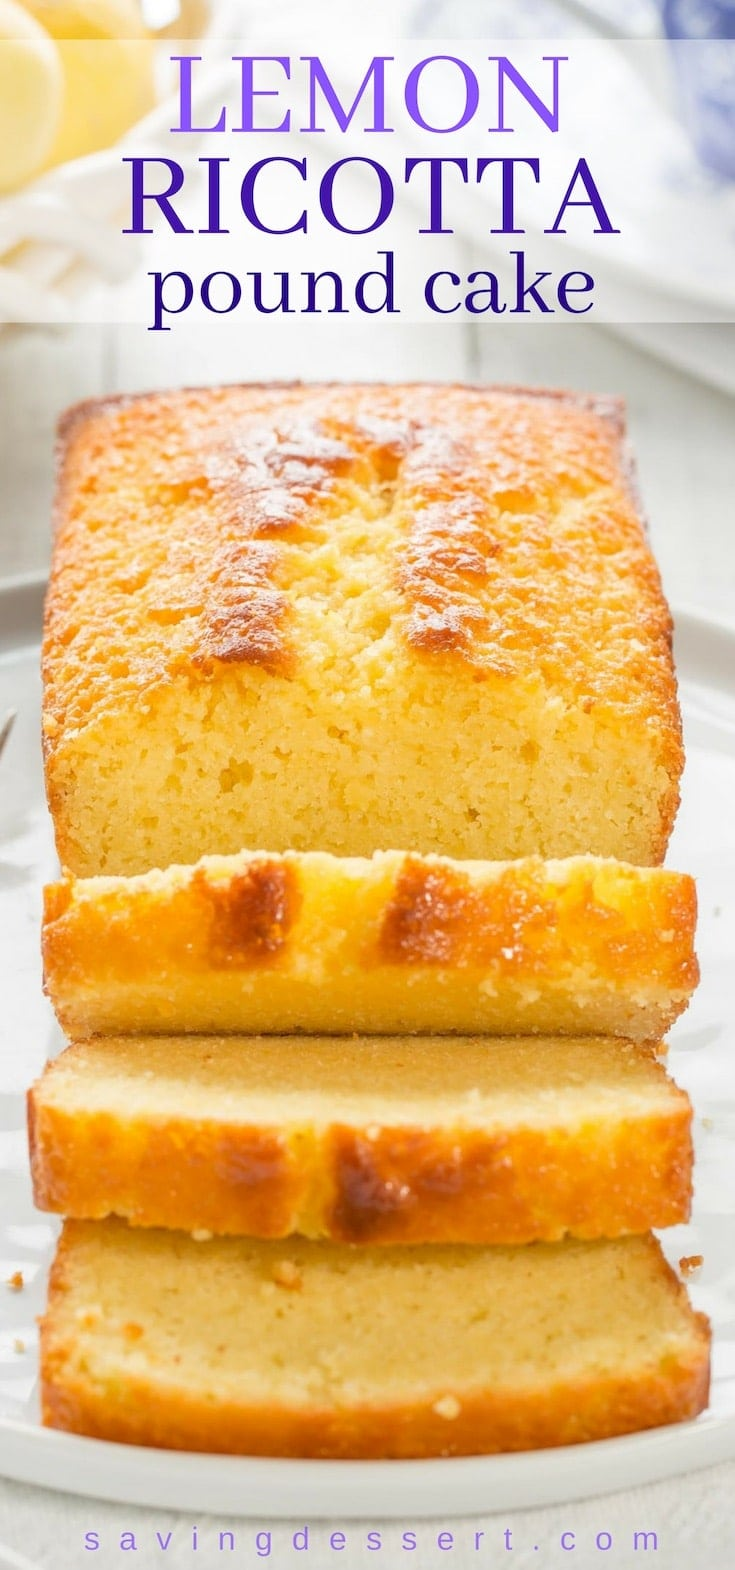 A sliced lemon ricotta pound cake